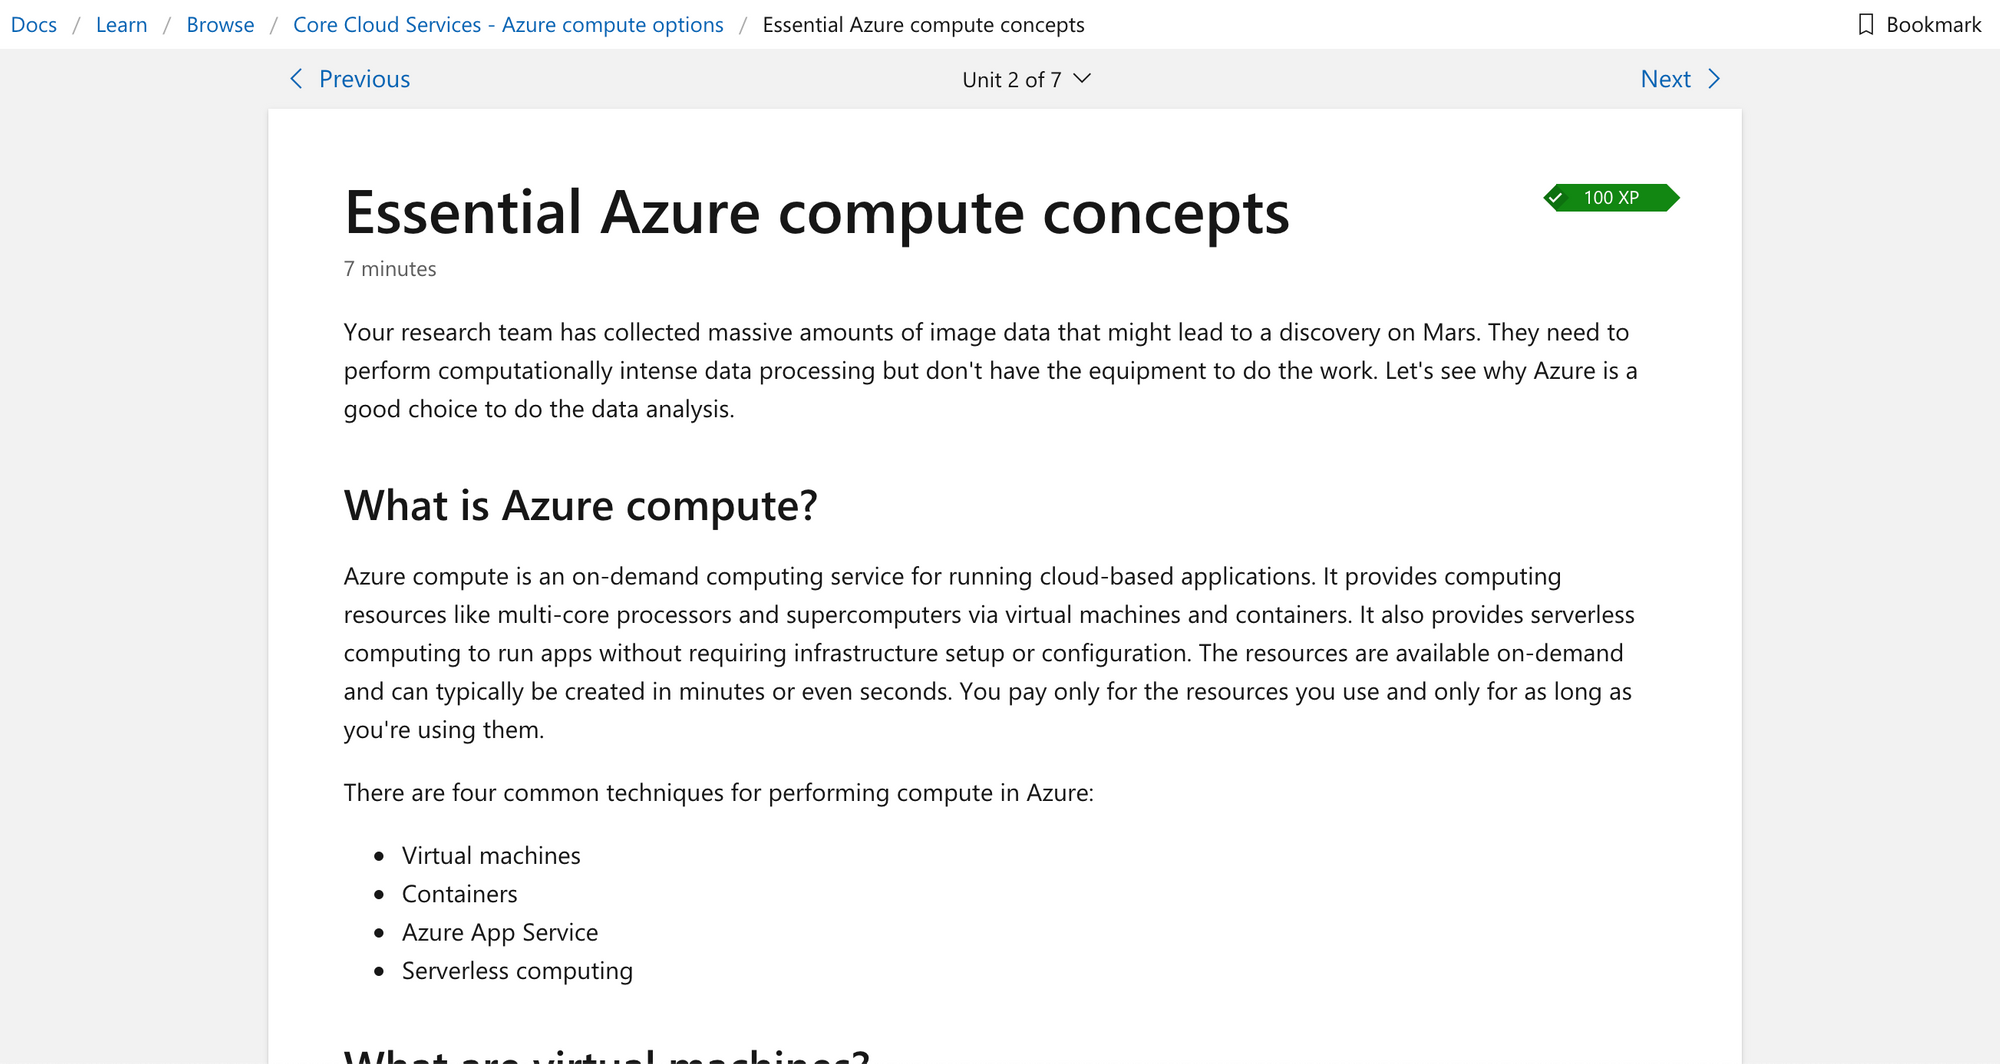 Azure fundamentals learning path